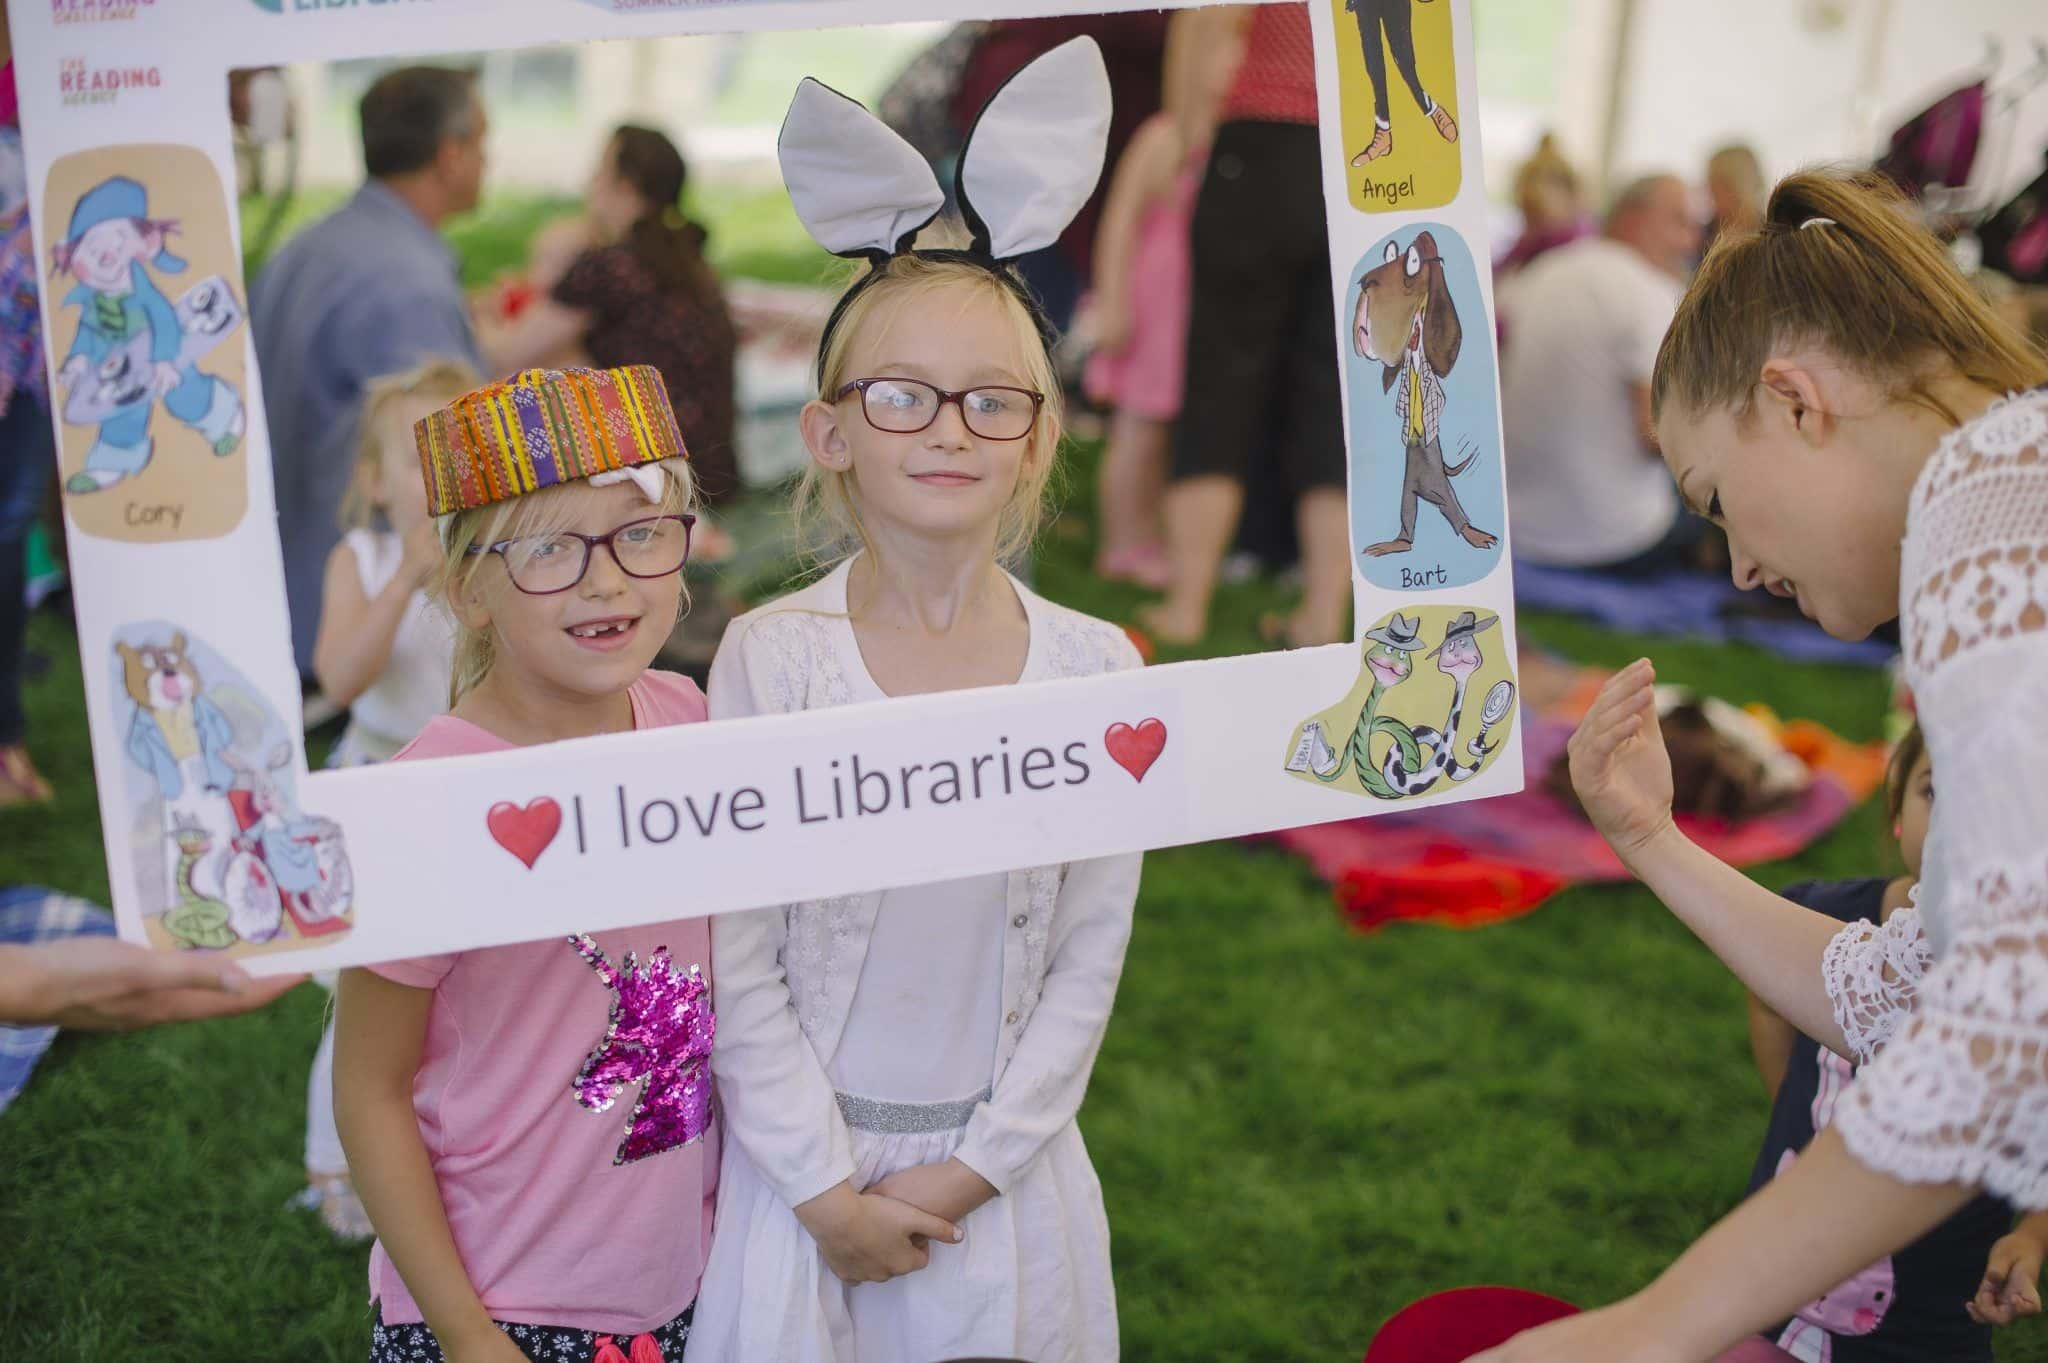 Exciting new future for Torbay's libraries